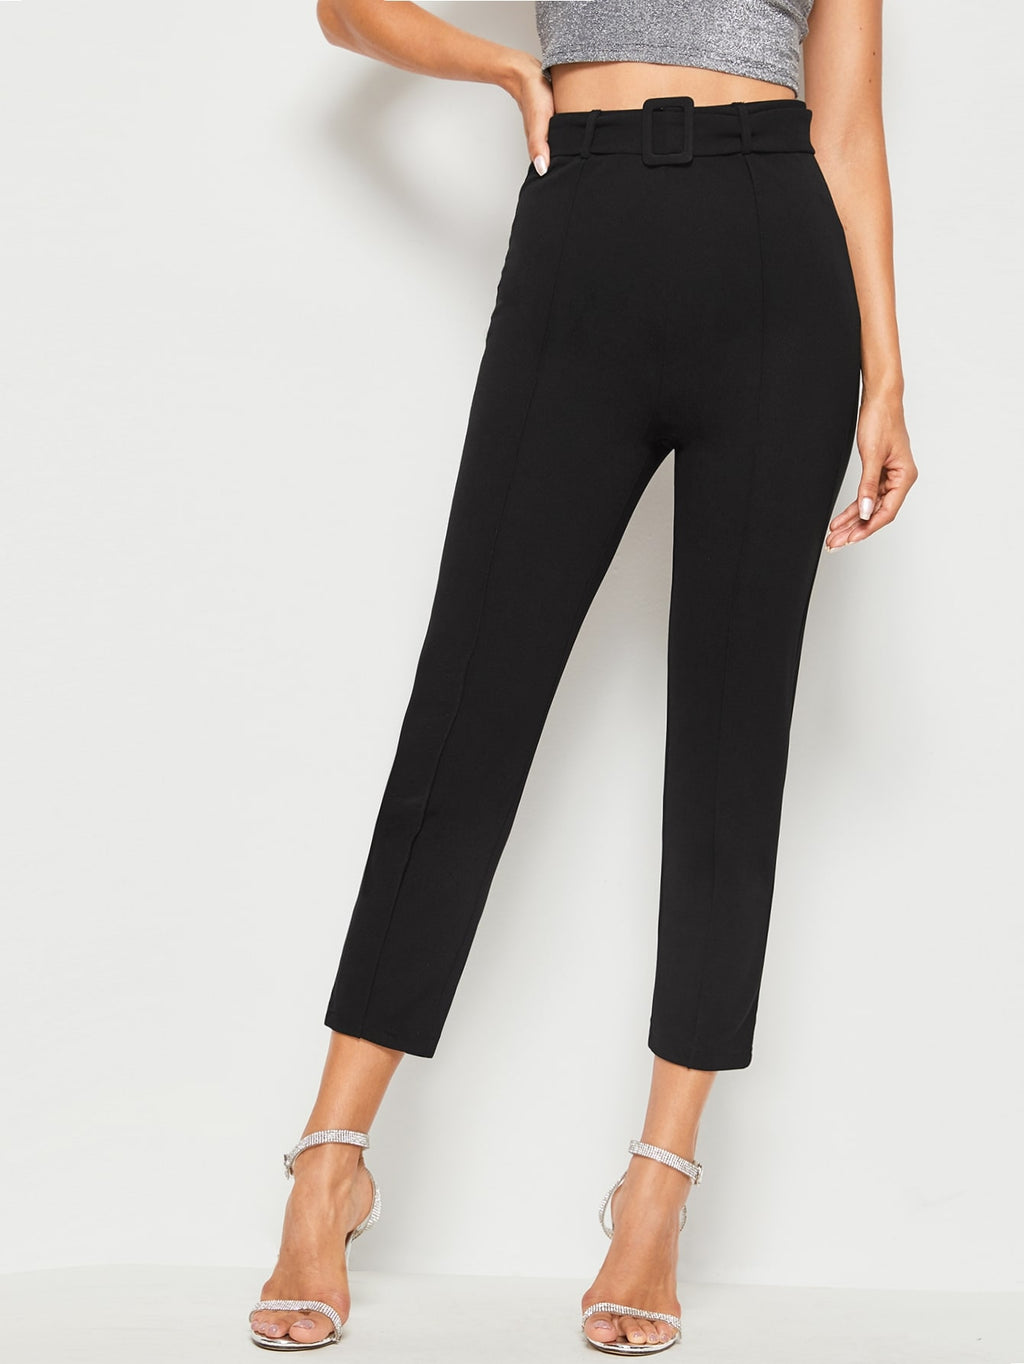 Buckle Belted Solid Cigarette Pants (4345144836161)